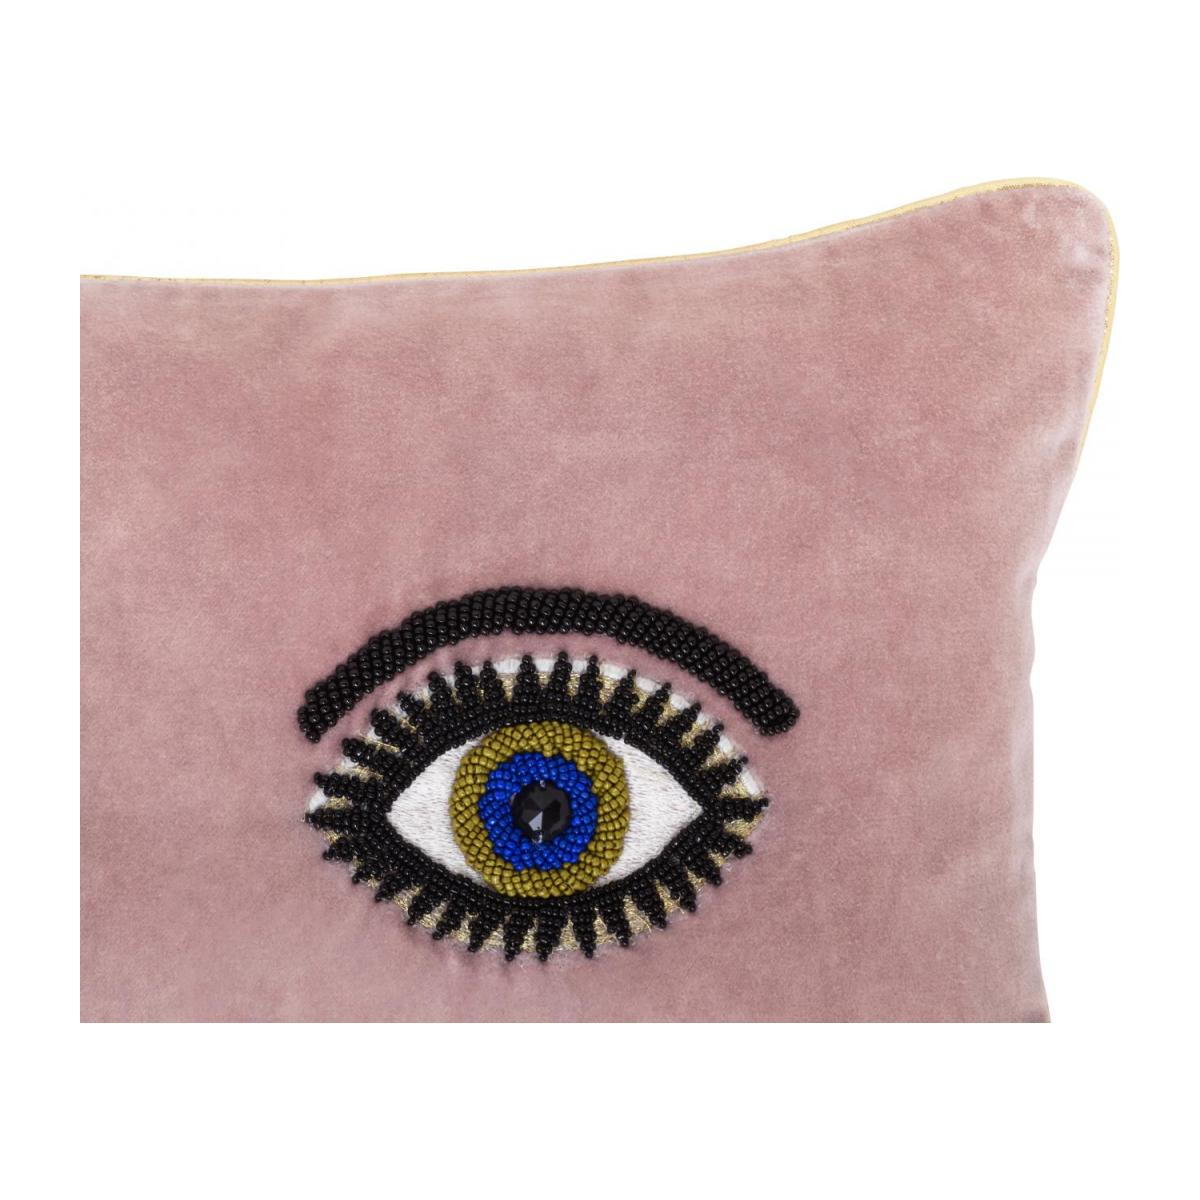 PROSPER/COUSSIN BRODE YEUX 30X50  n°5